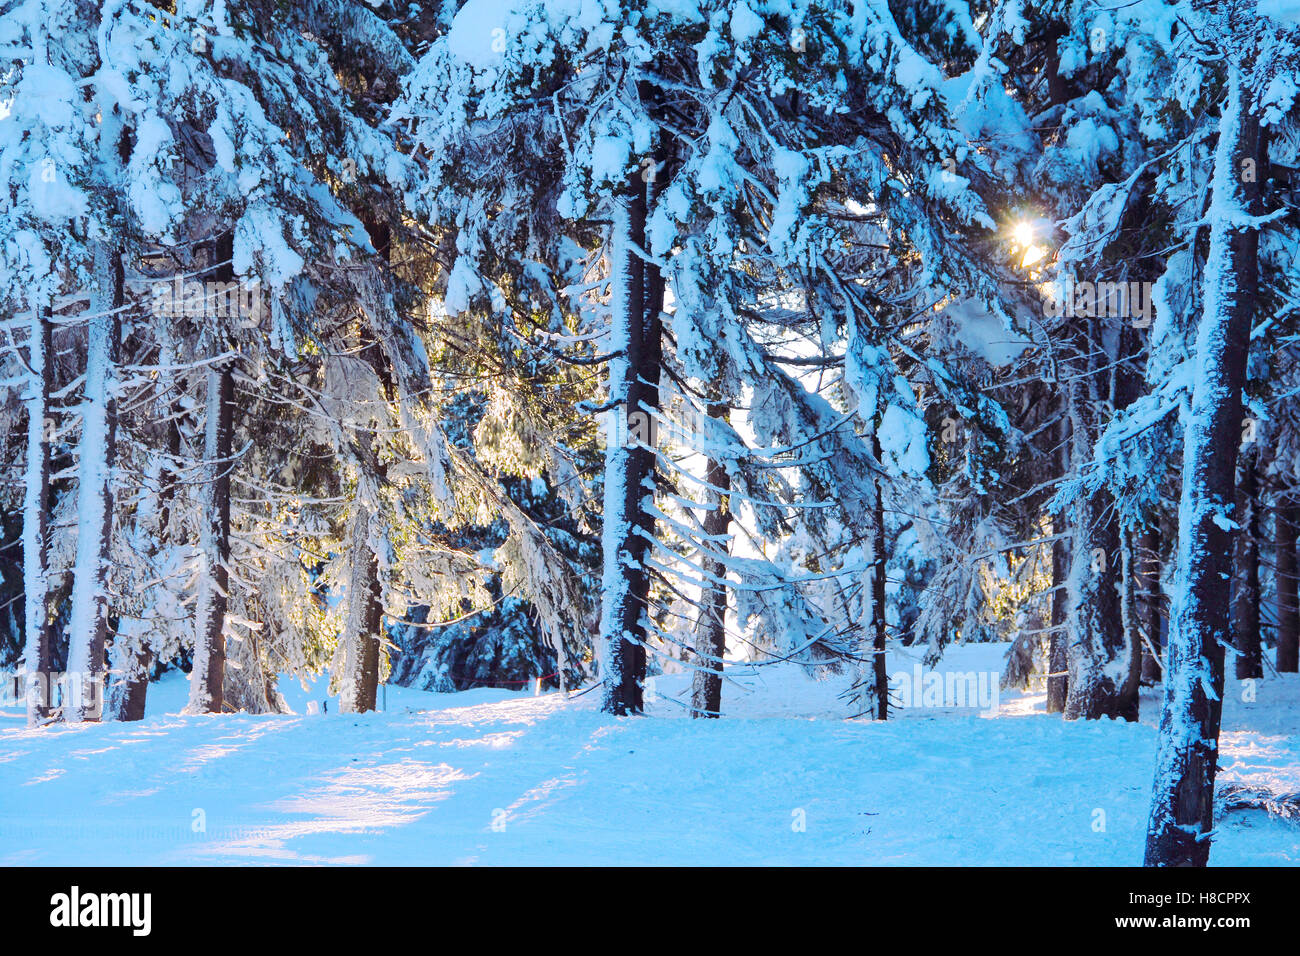 Winter forest on the skiing resort Spindleruv Mlyn, Krkonose, Czech Republic Stock Photo